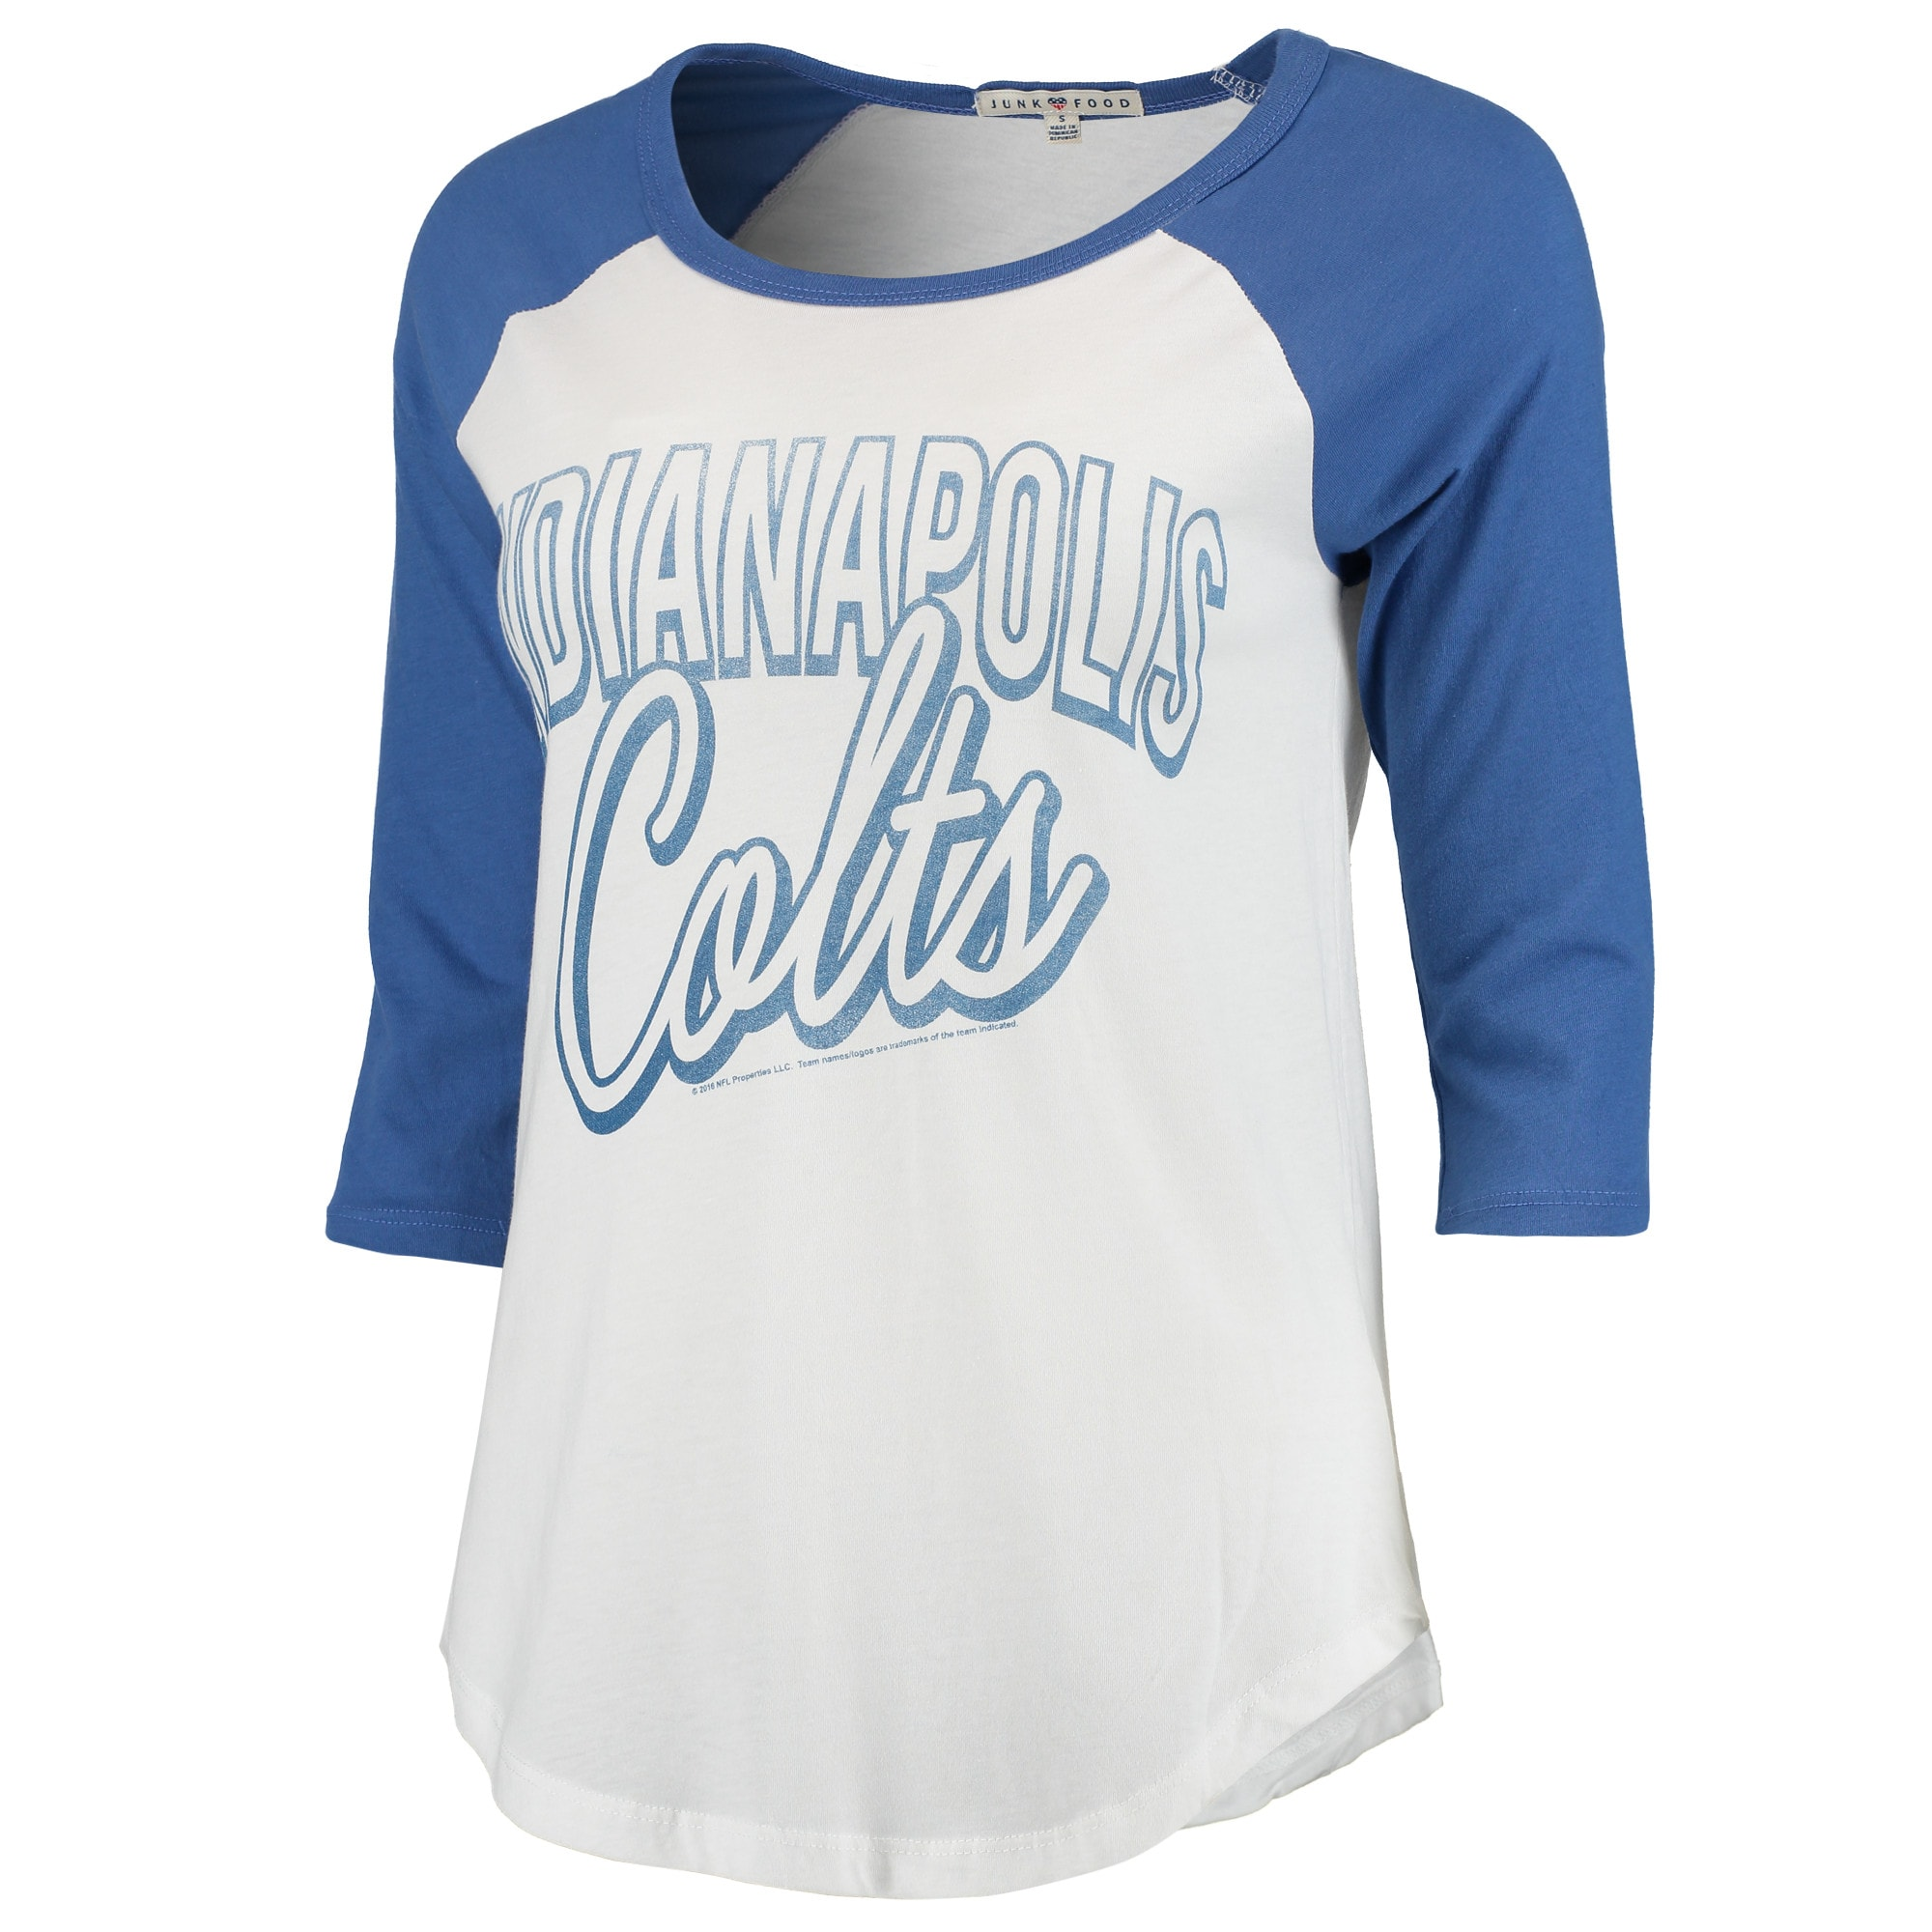 Indianapolis Colts Women's Play Action Vintage 3/4-Sleeve Raglan T-Shirt - White/Royal